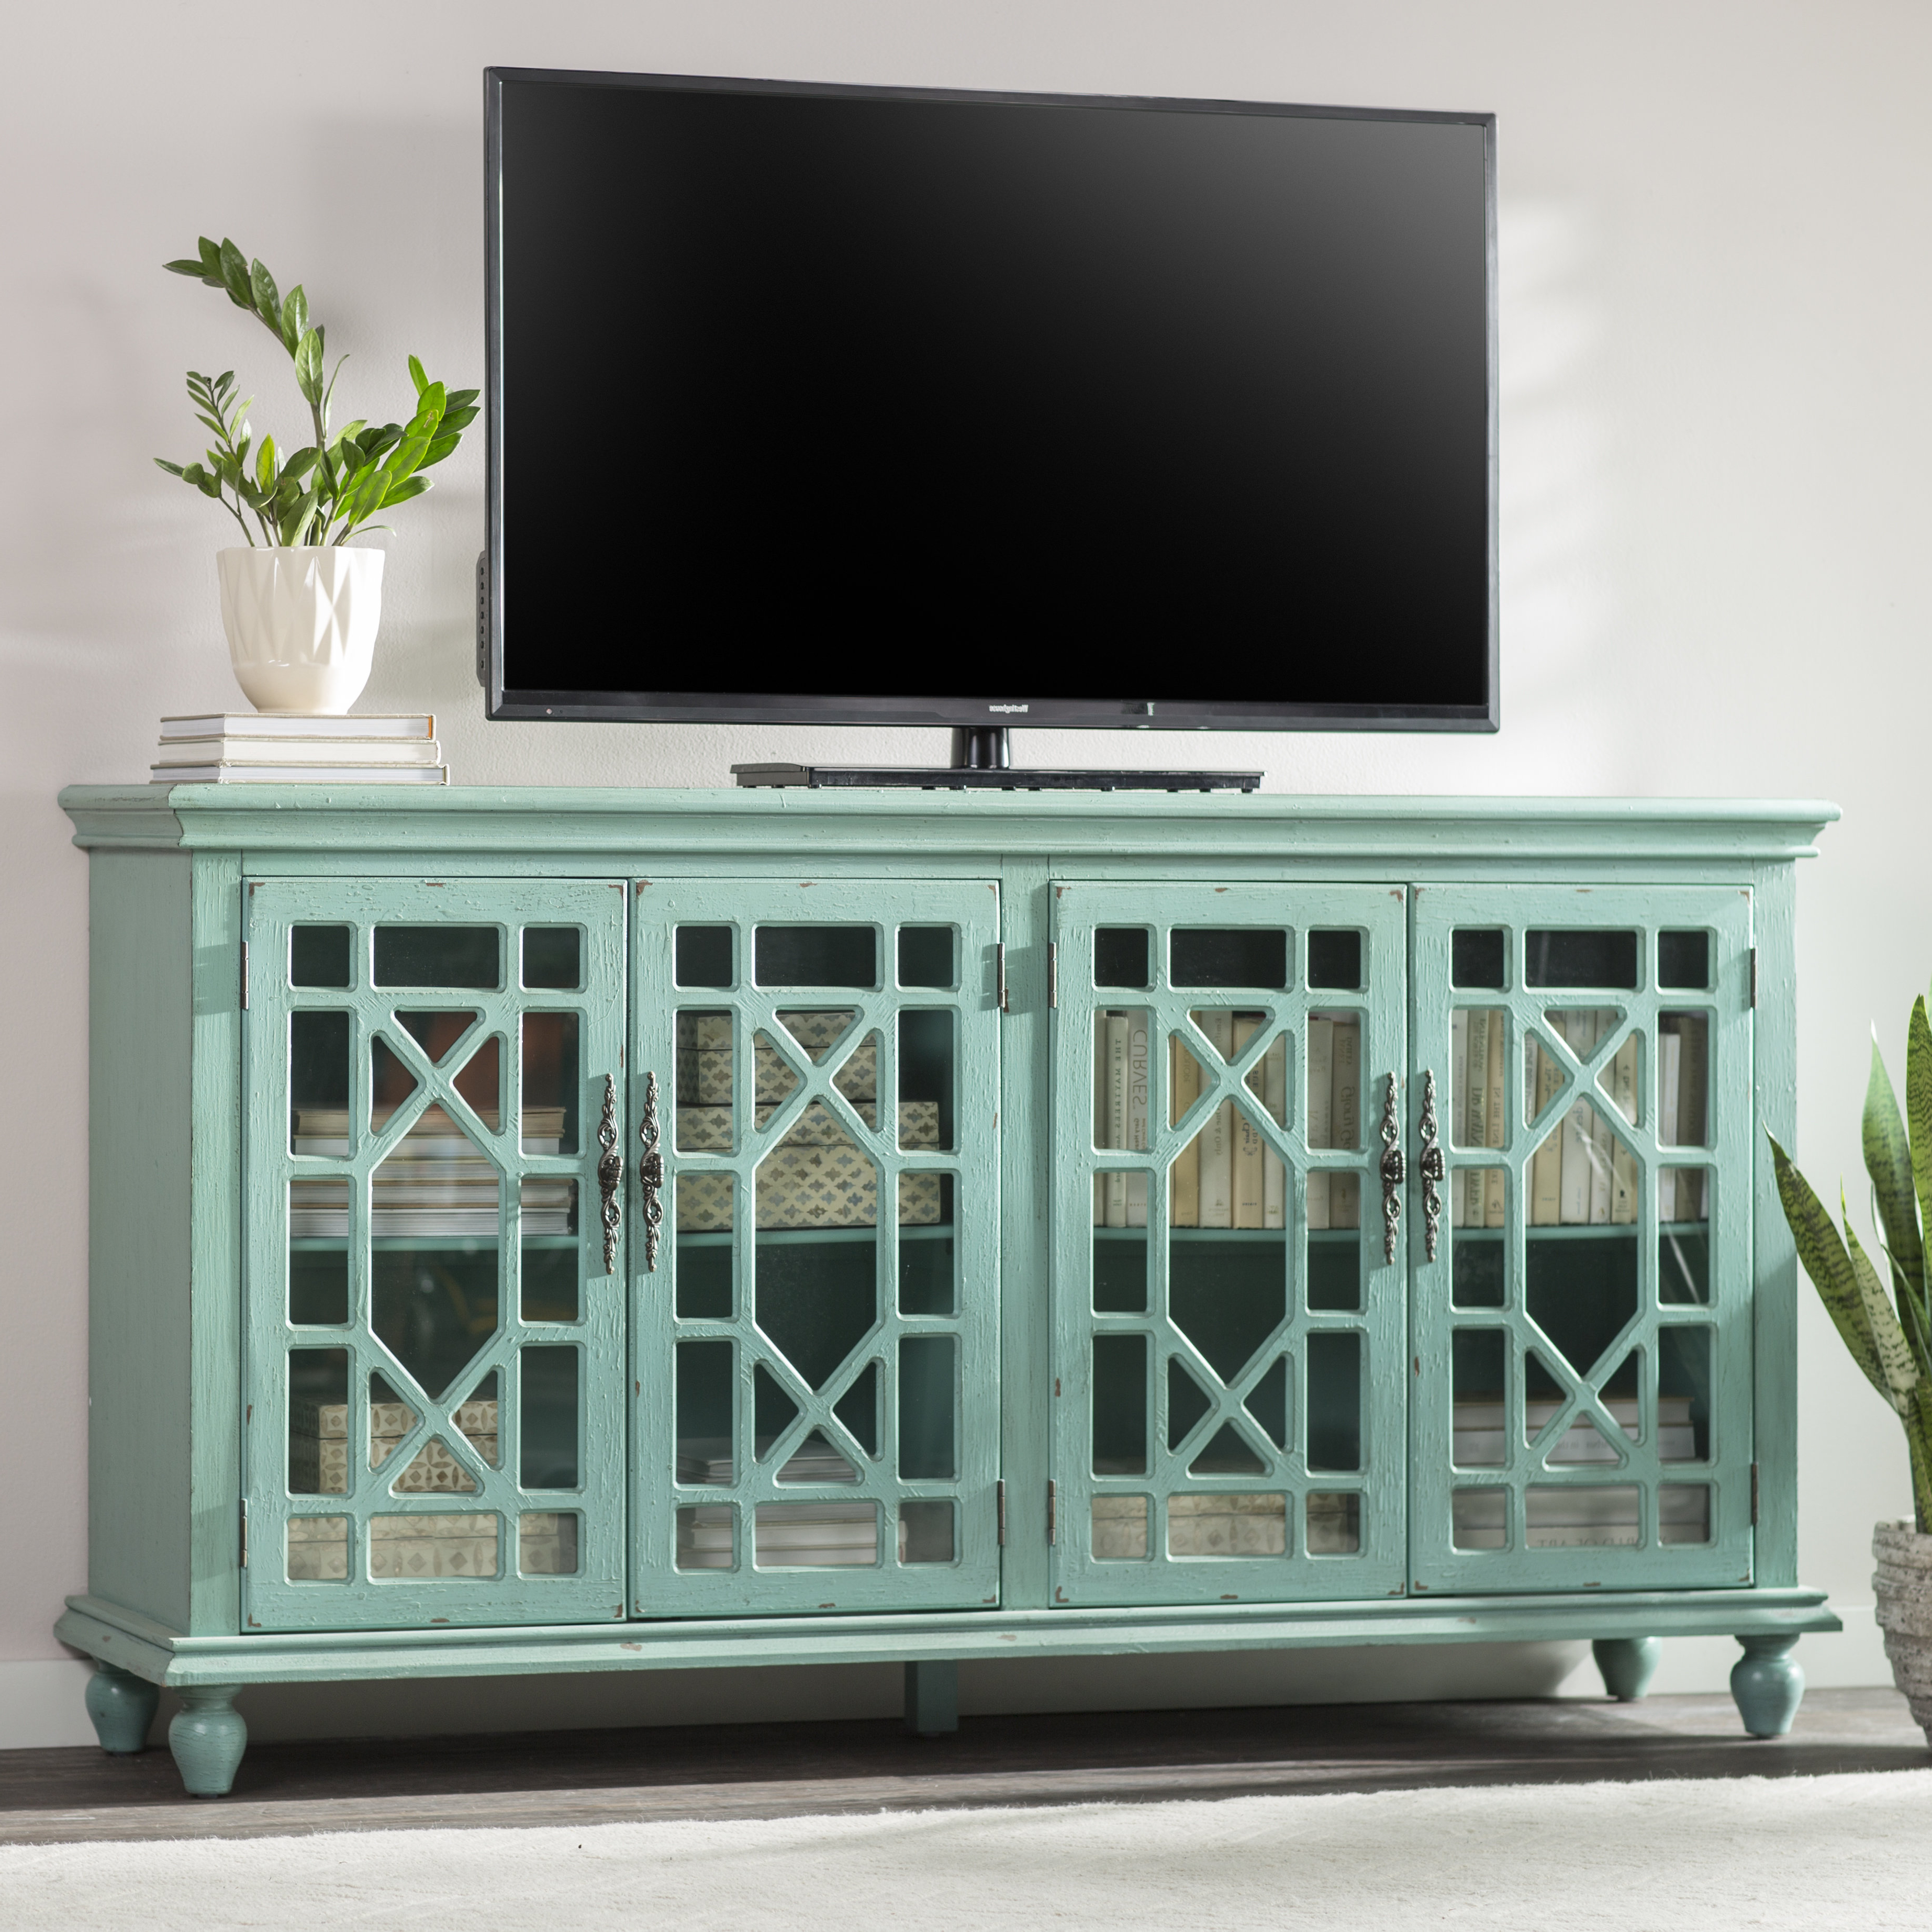 "Well Known Mistana Ira Tv Stand For Tvs Up To 70"" With Colefax Vintage Tv Stands For Tvs Up To 78"" (View 7 of 20)"